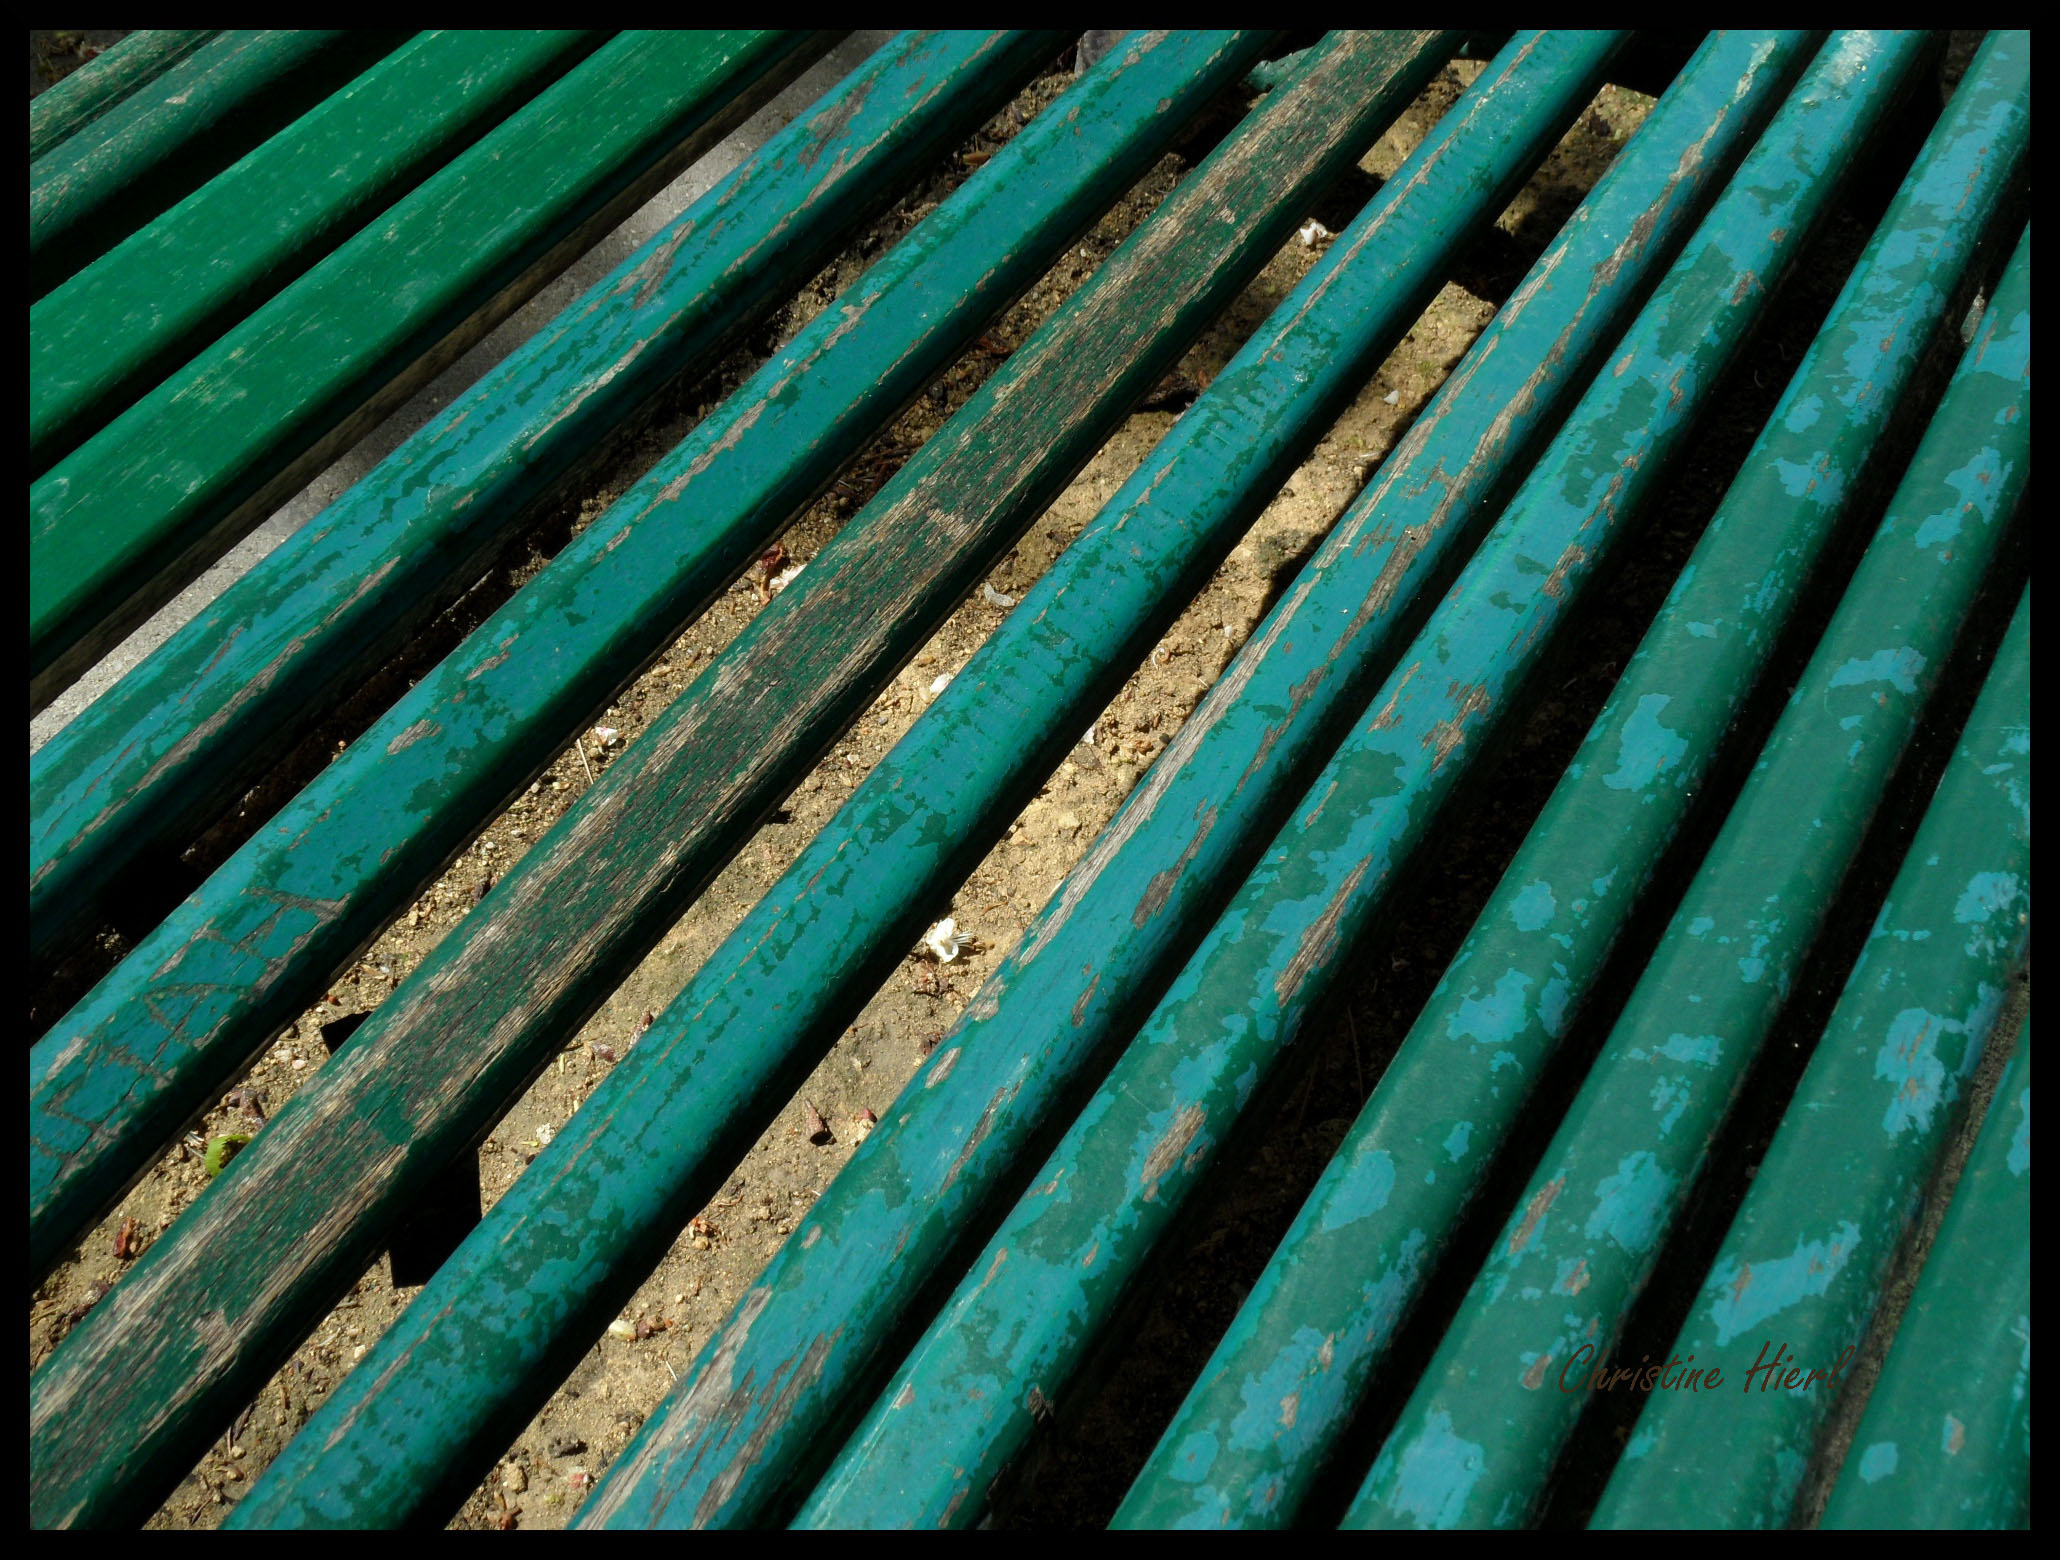 close up of slats of old green bench in Parc Montsouris, Paris